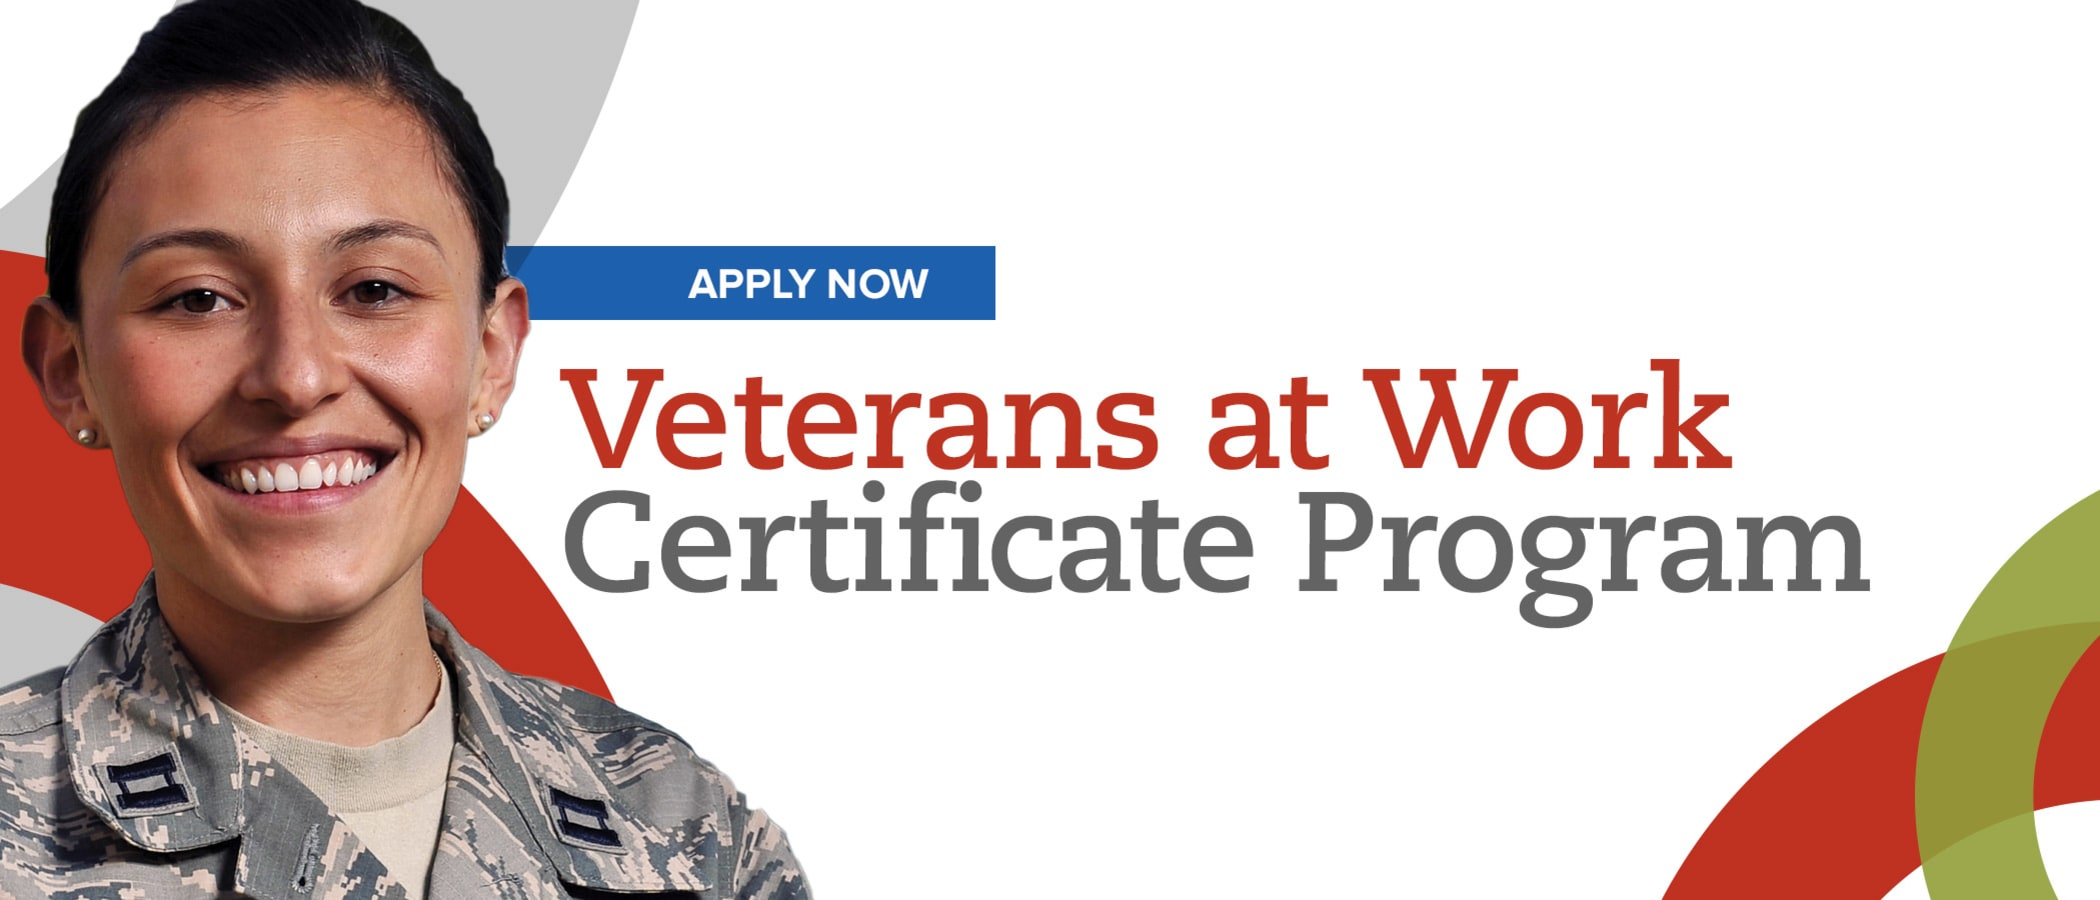 SHRM Foundation Veterans at Work Certificate Program